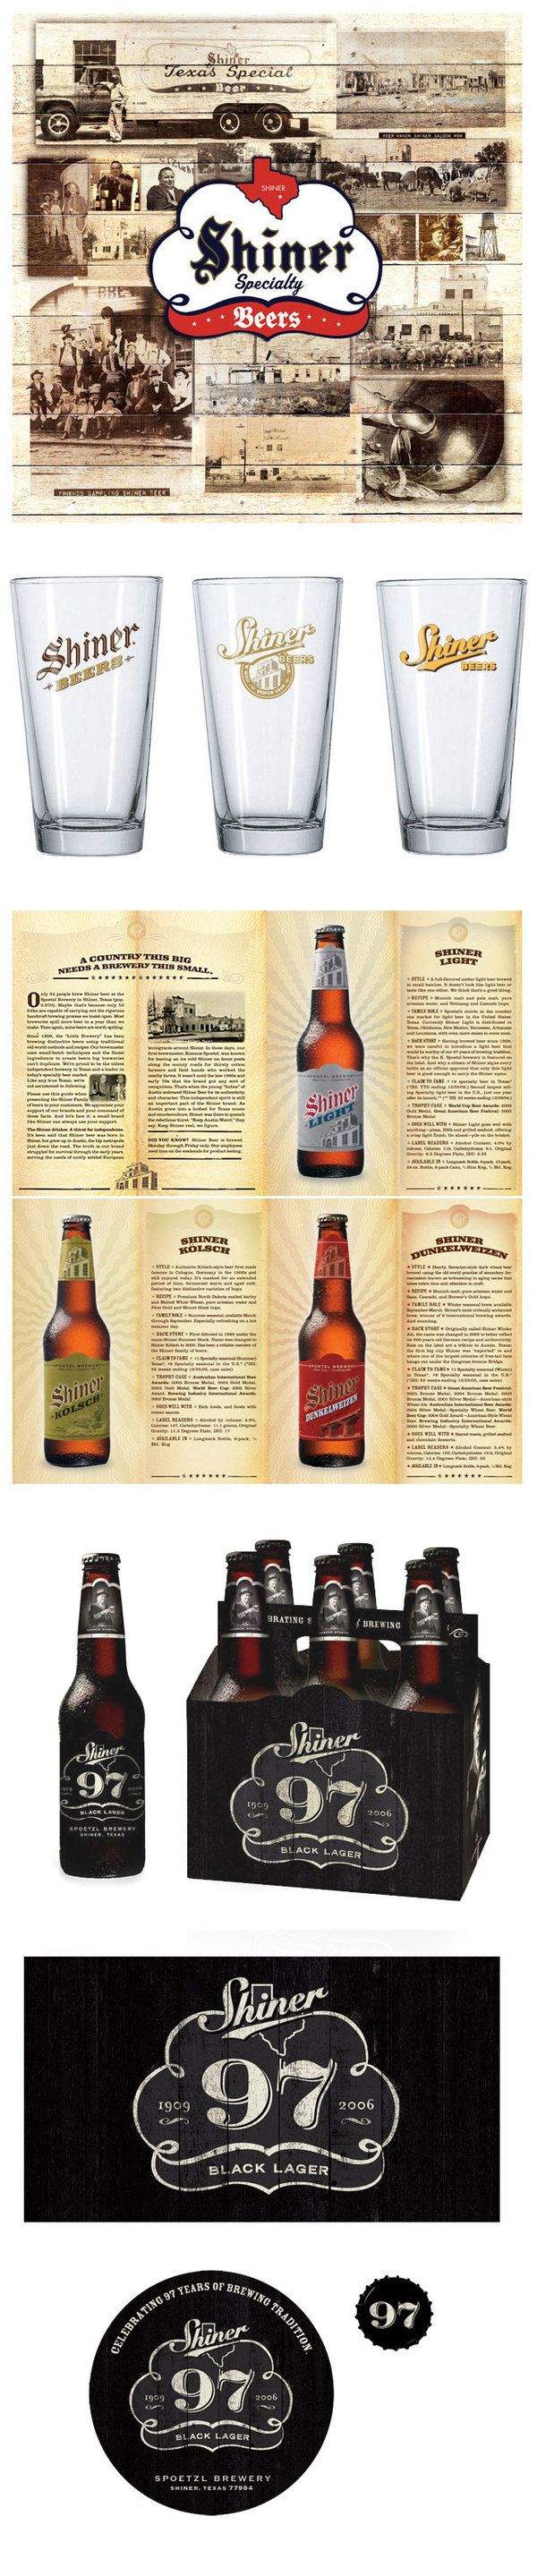 Shiner Beers by Knoed , via Behance: Design Inspiration, Graphic Design, Branding Design, Awesome Branding, Branding Packaging, American Branding, Beers Branding, Beer Branding, Shiner Beers